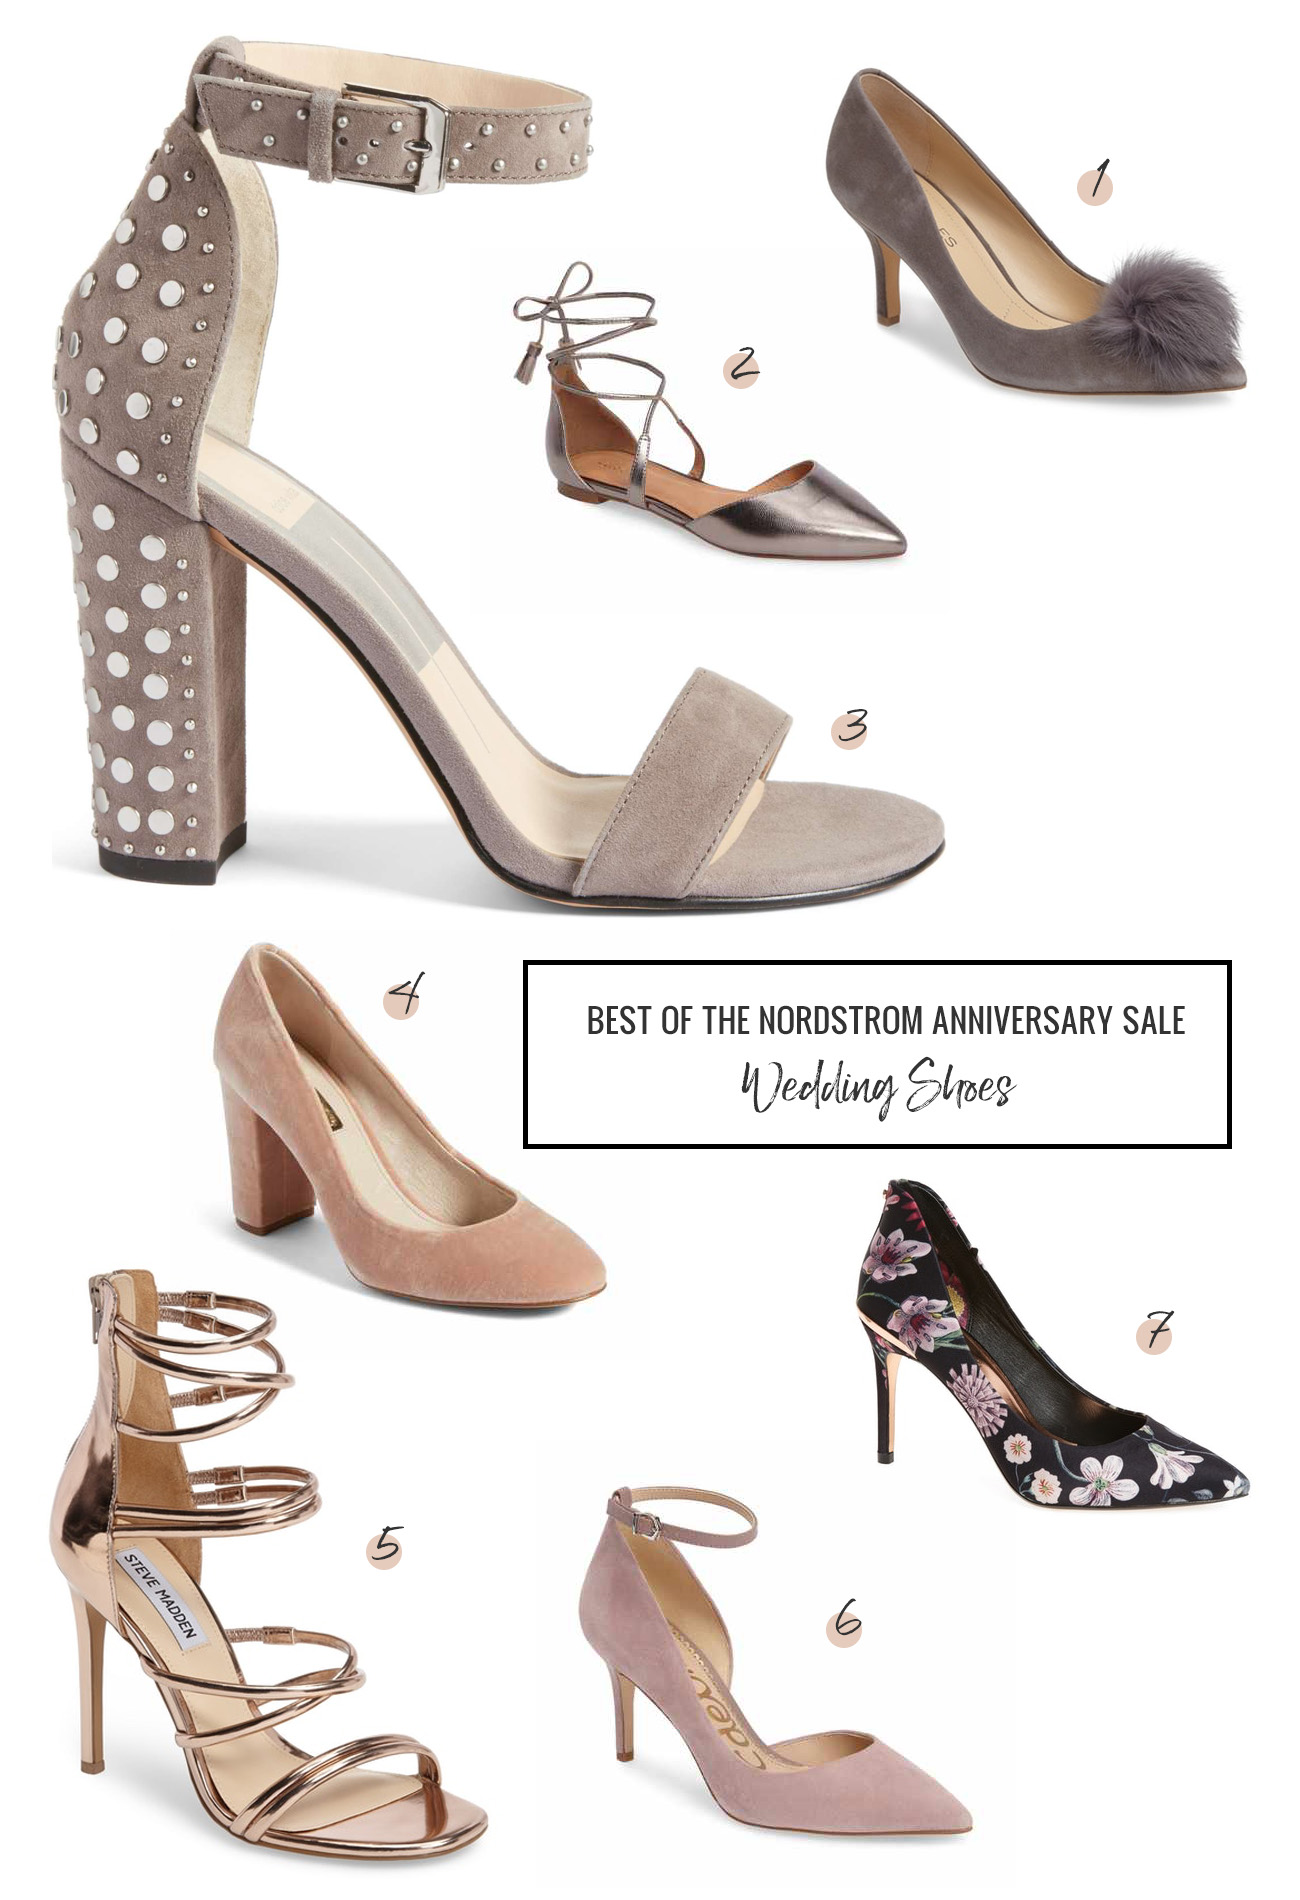 be5b50ad3c48 Nordstrom Anniversary Sale - Our Shoe Picks! - Green Wedding Shoes